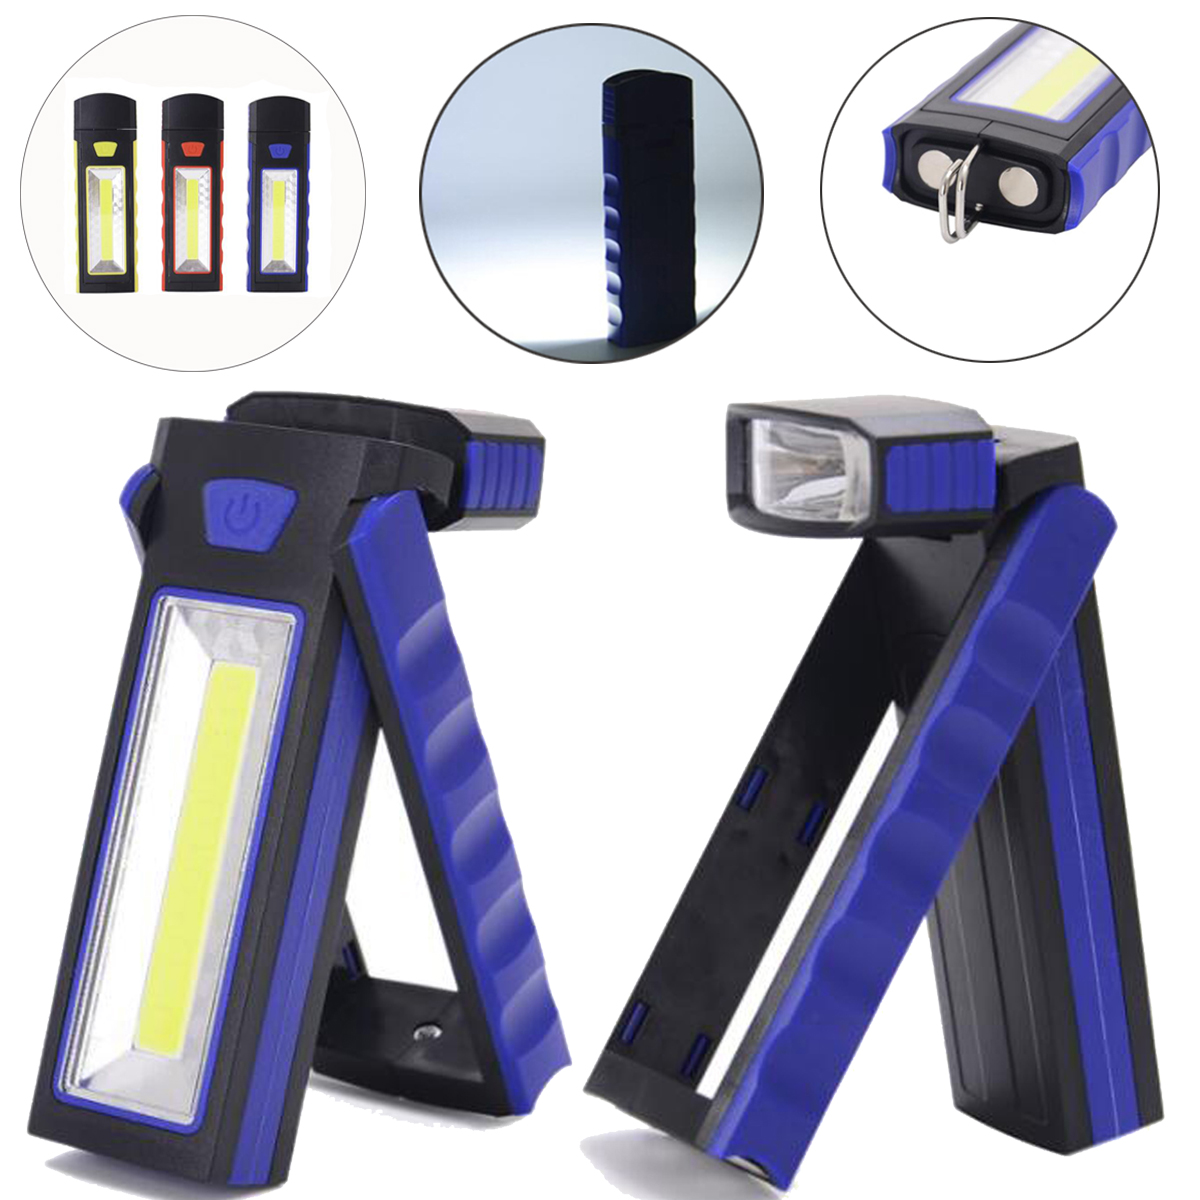 Adjustable COB LED Work Light Flashlight Torch Lantern With Magnetic Hook Outdoors Camping Sport Lamp